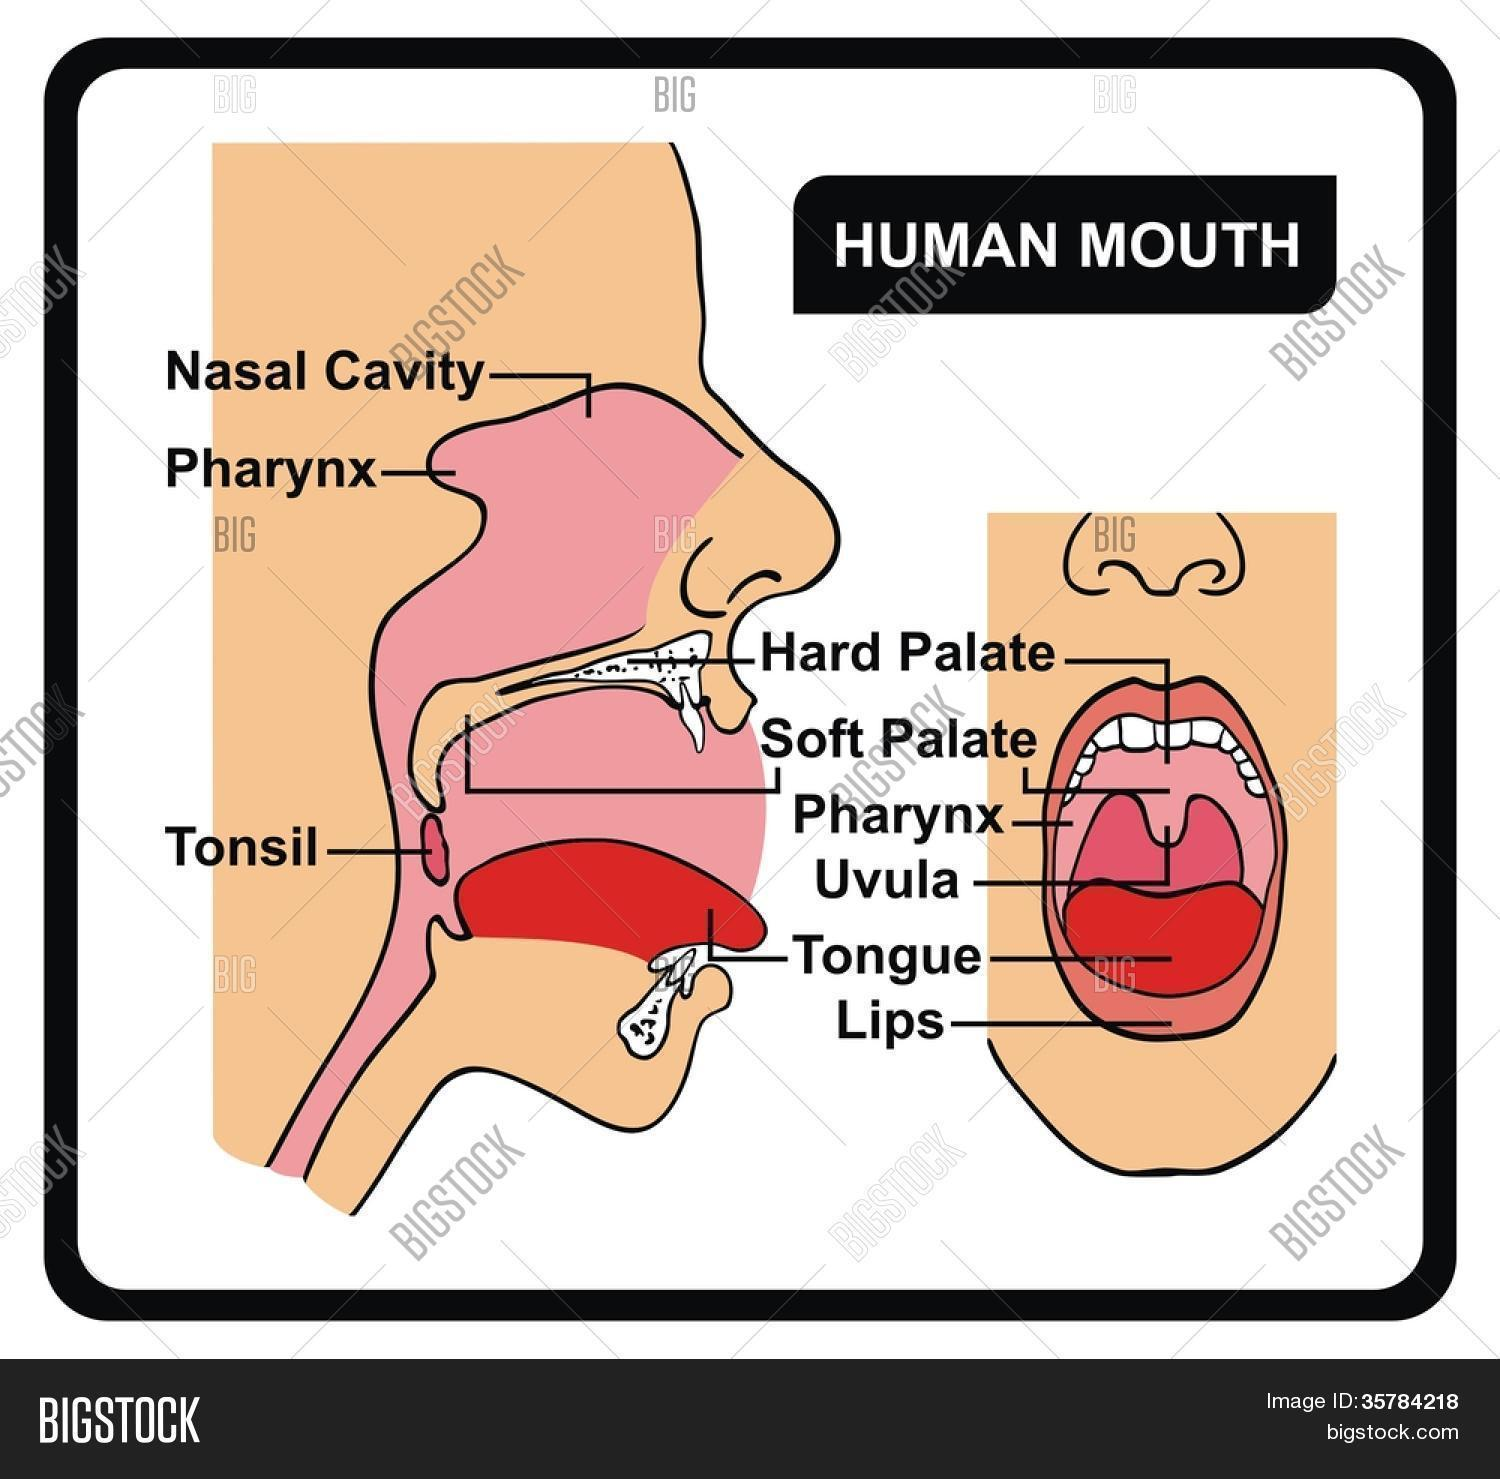 Human Mouth Anatomy Image & Photo (Free Trial) | Bigstock